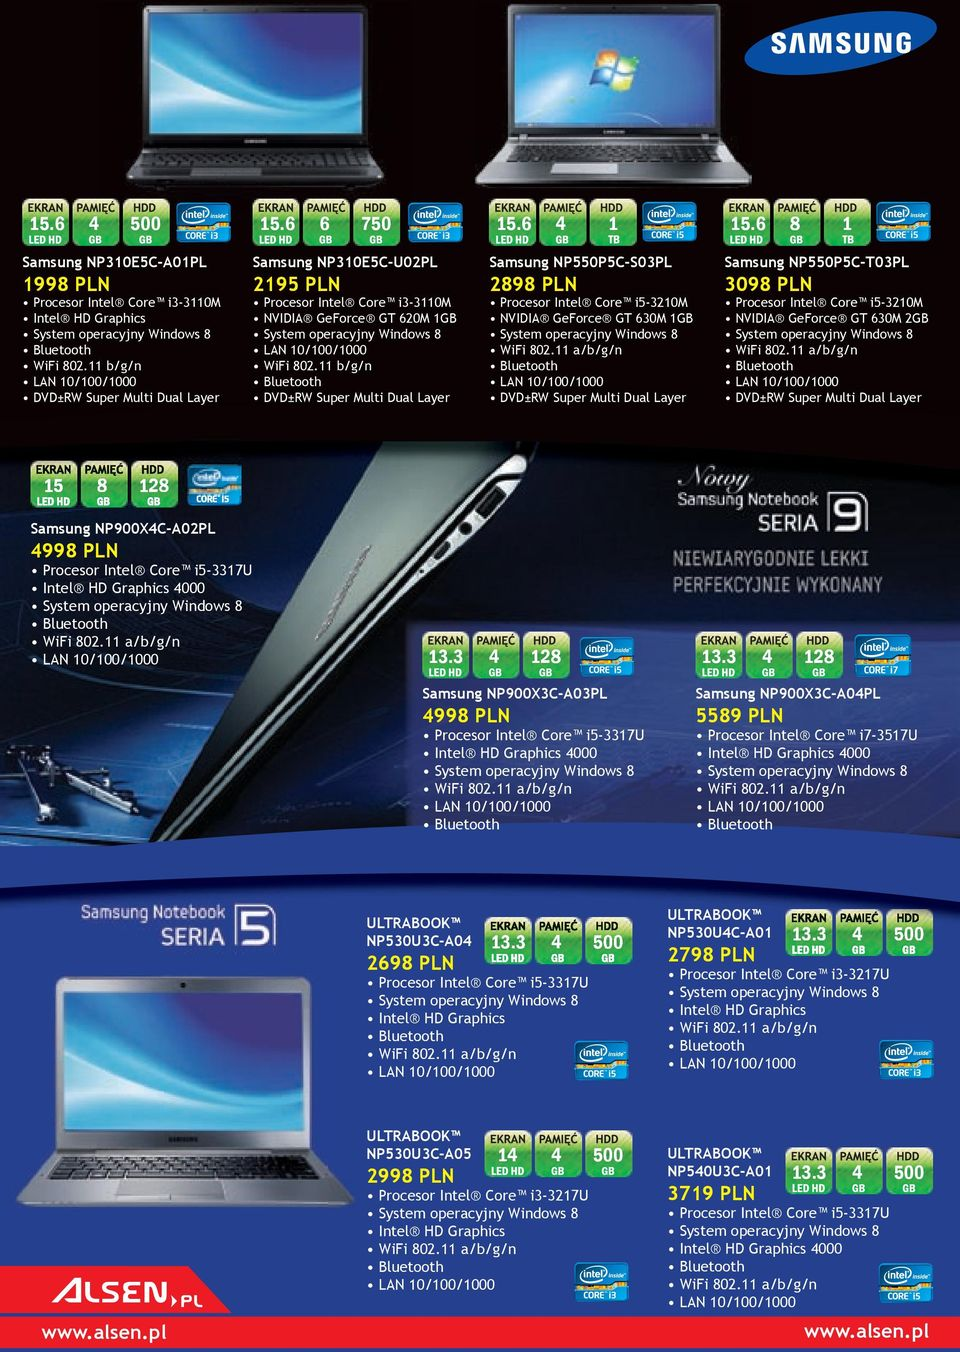 11 b/g/n LAN 10/100/1000 DVD±RW Super Multi Dual Layer 15 8 Procesor Intel Core i3-3110m NVIDIA GeForce GT 620M 1GB LAN 10/100/1000 WiFi 802.